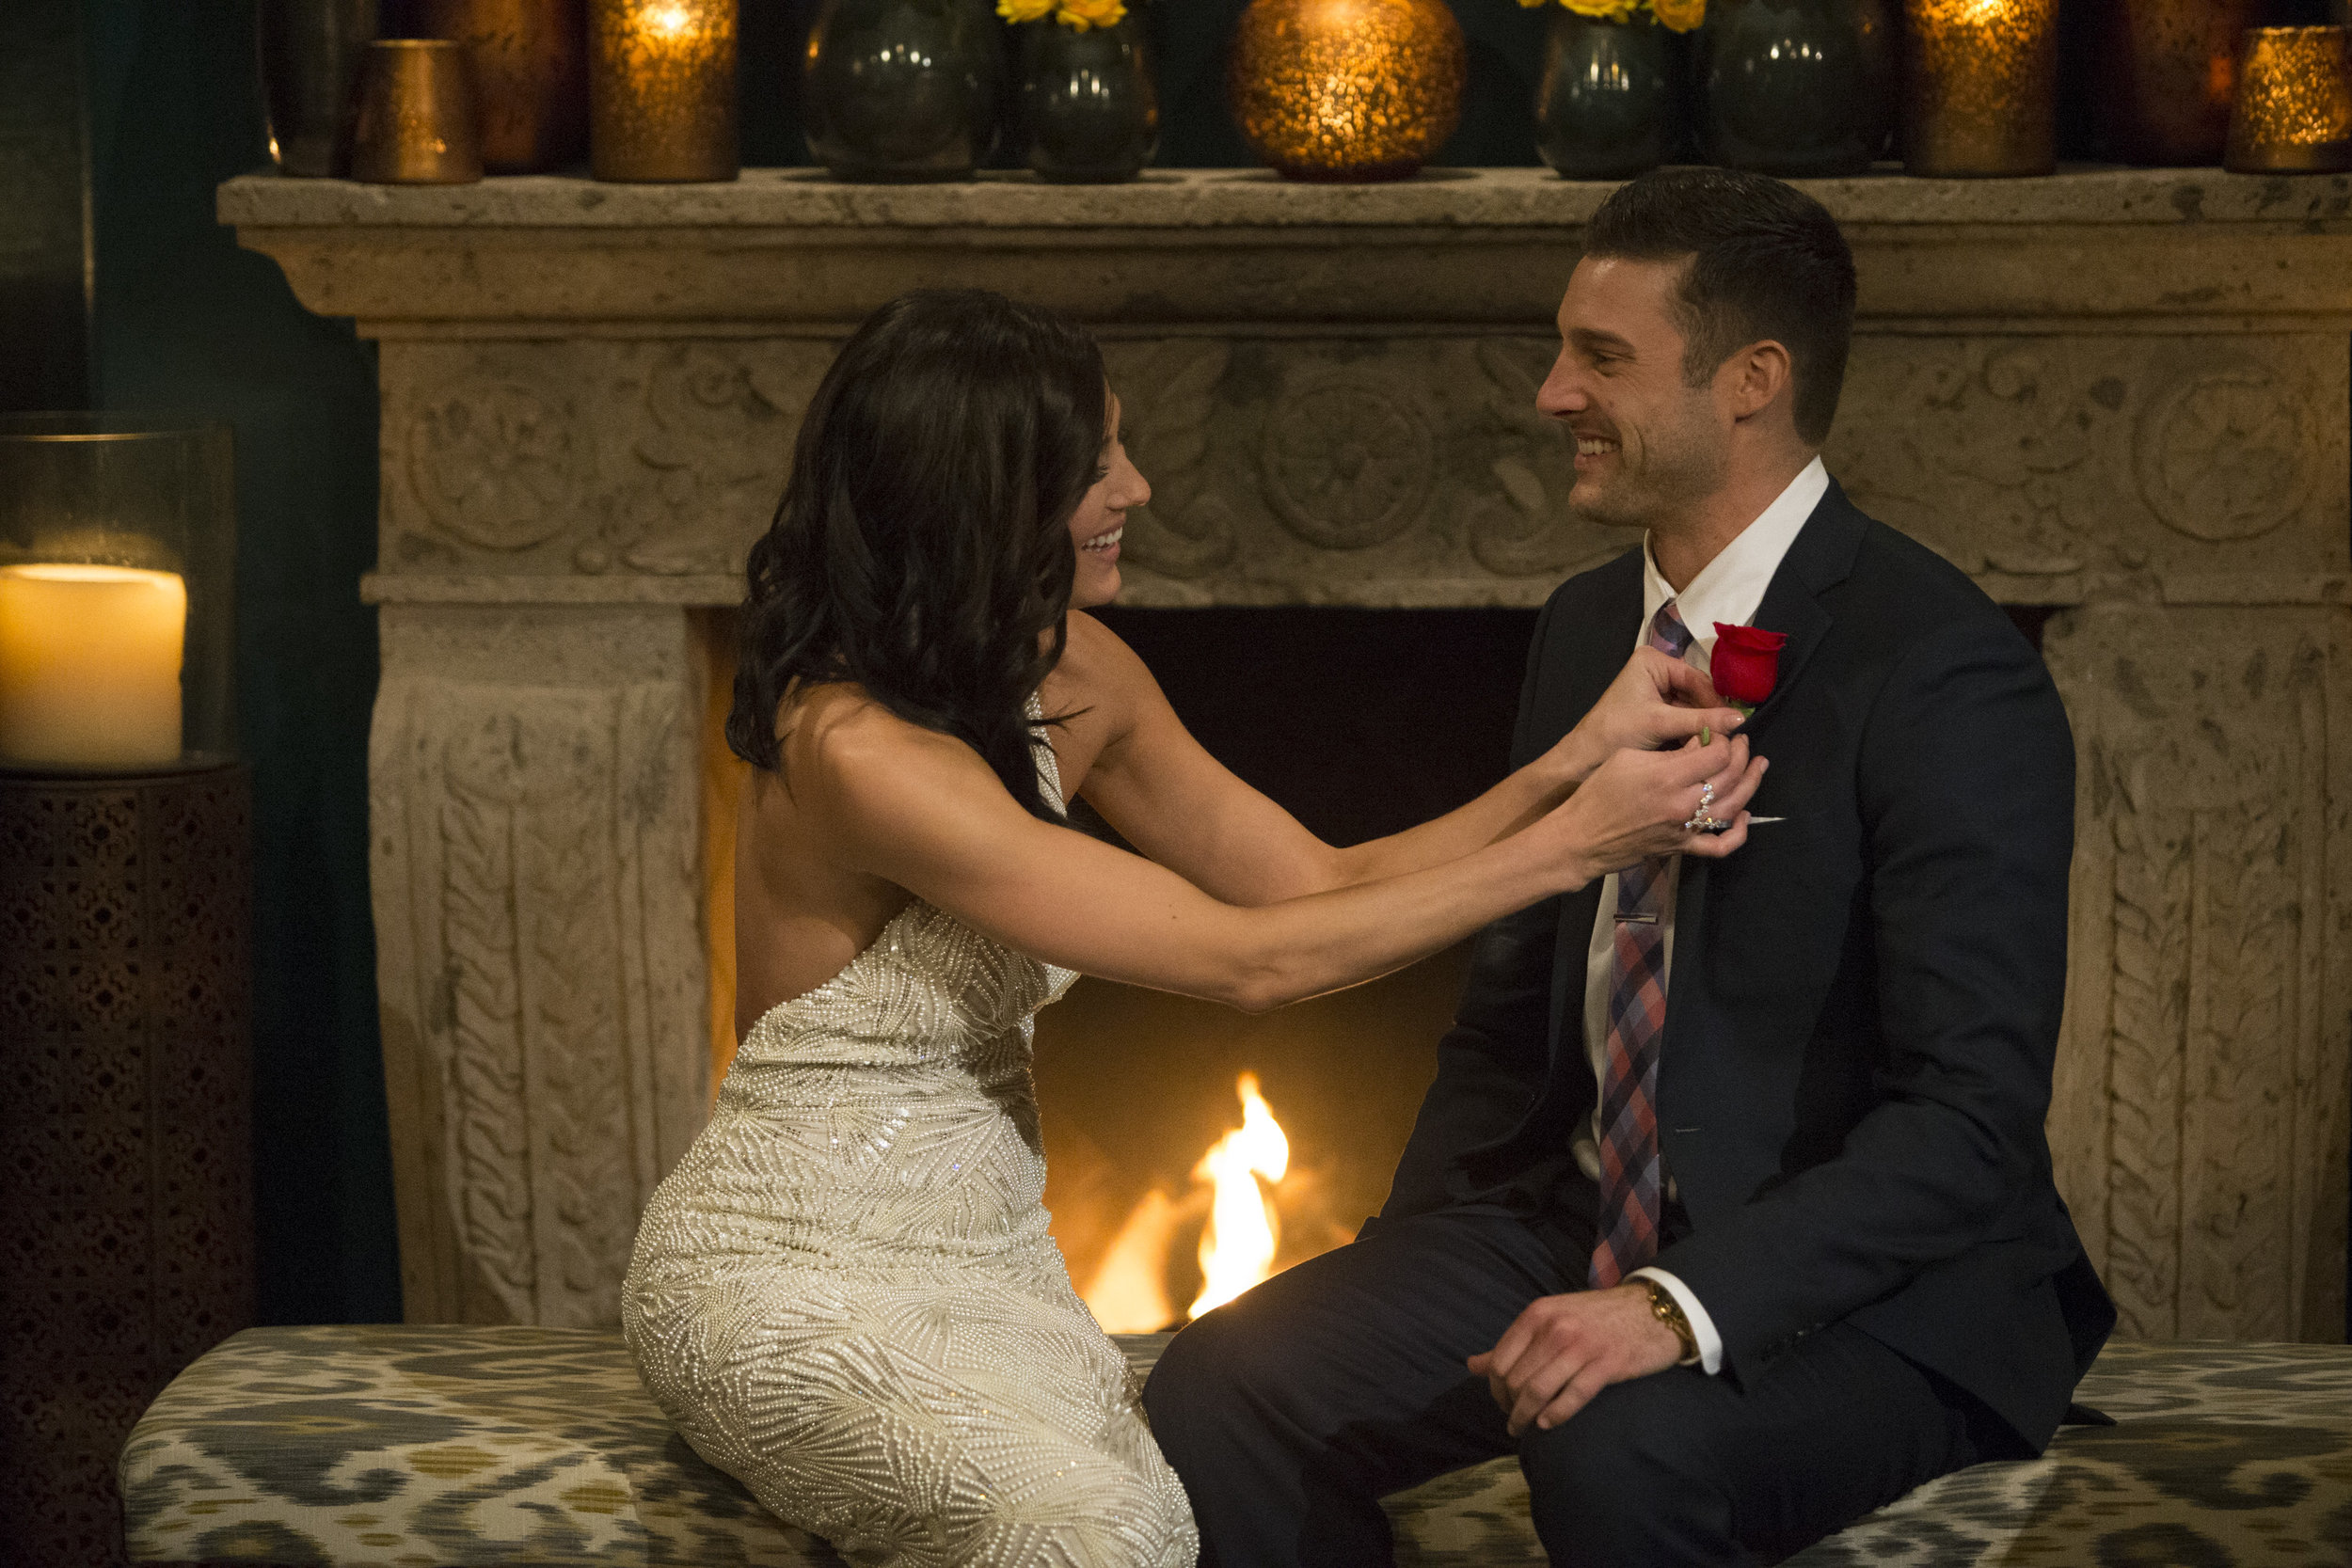 Bachelorette Becca Kufrin gives contestant Garrett Yrigoyen the First Impression rose. She's a Hillary supporter, he's secretly a racist bigot; what could go wrong? (ABC/Paul Hebert)